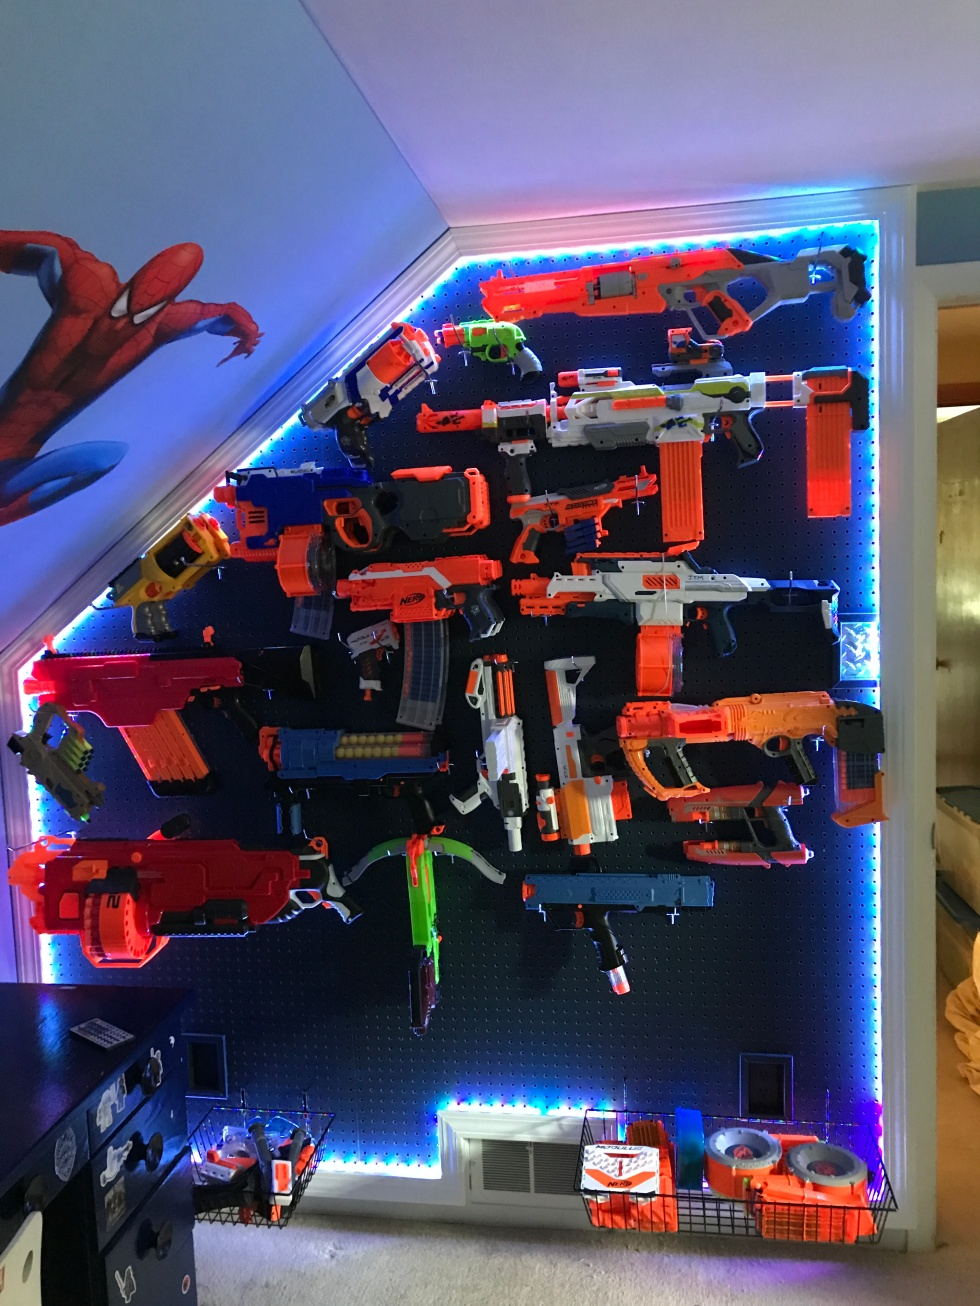 ... Nerf guns, so me and my dad built a Nerf armory. As you can see, it has  cool LED lights. Currently, I have 29 Nerf guns and will be getting more  soon.